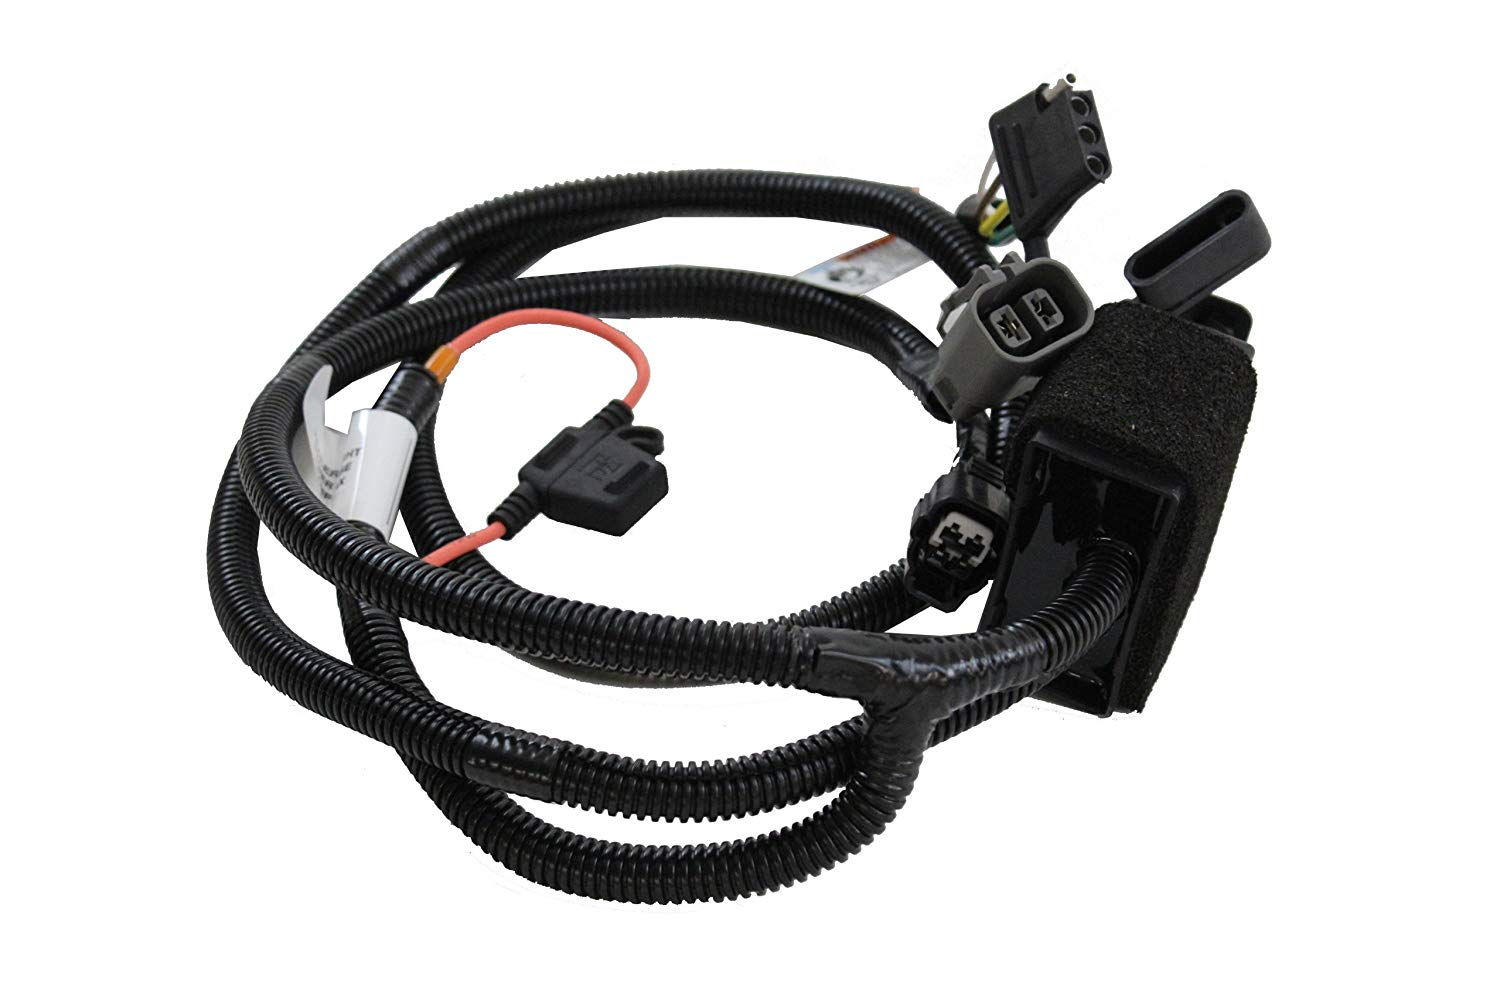 Astonishing 05 Kia Sorento Rear Wiring Harness Parts Wiring Library Wiring Cloud Counpengheilarigresichrocarnosporgarnagrebsunhorelemohammedshrineorg